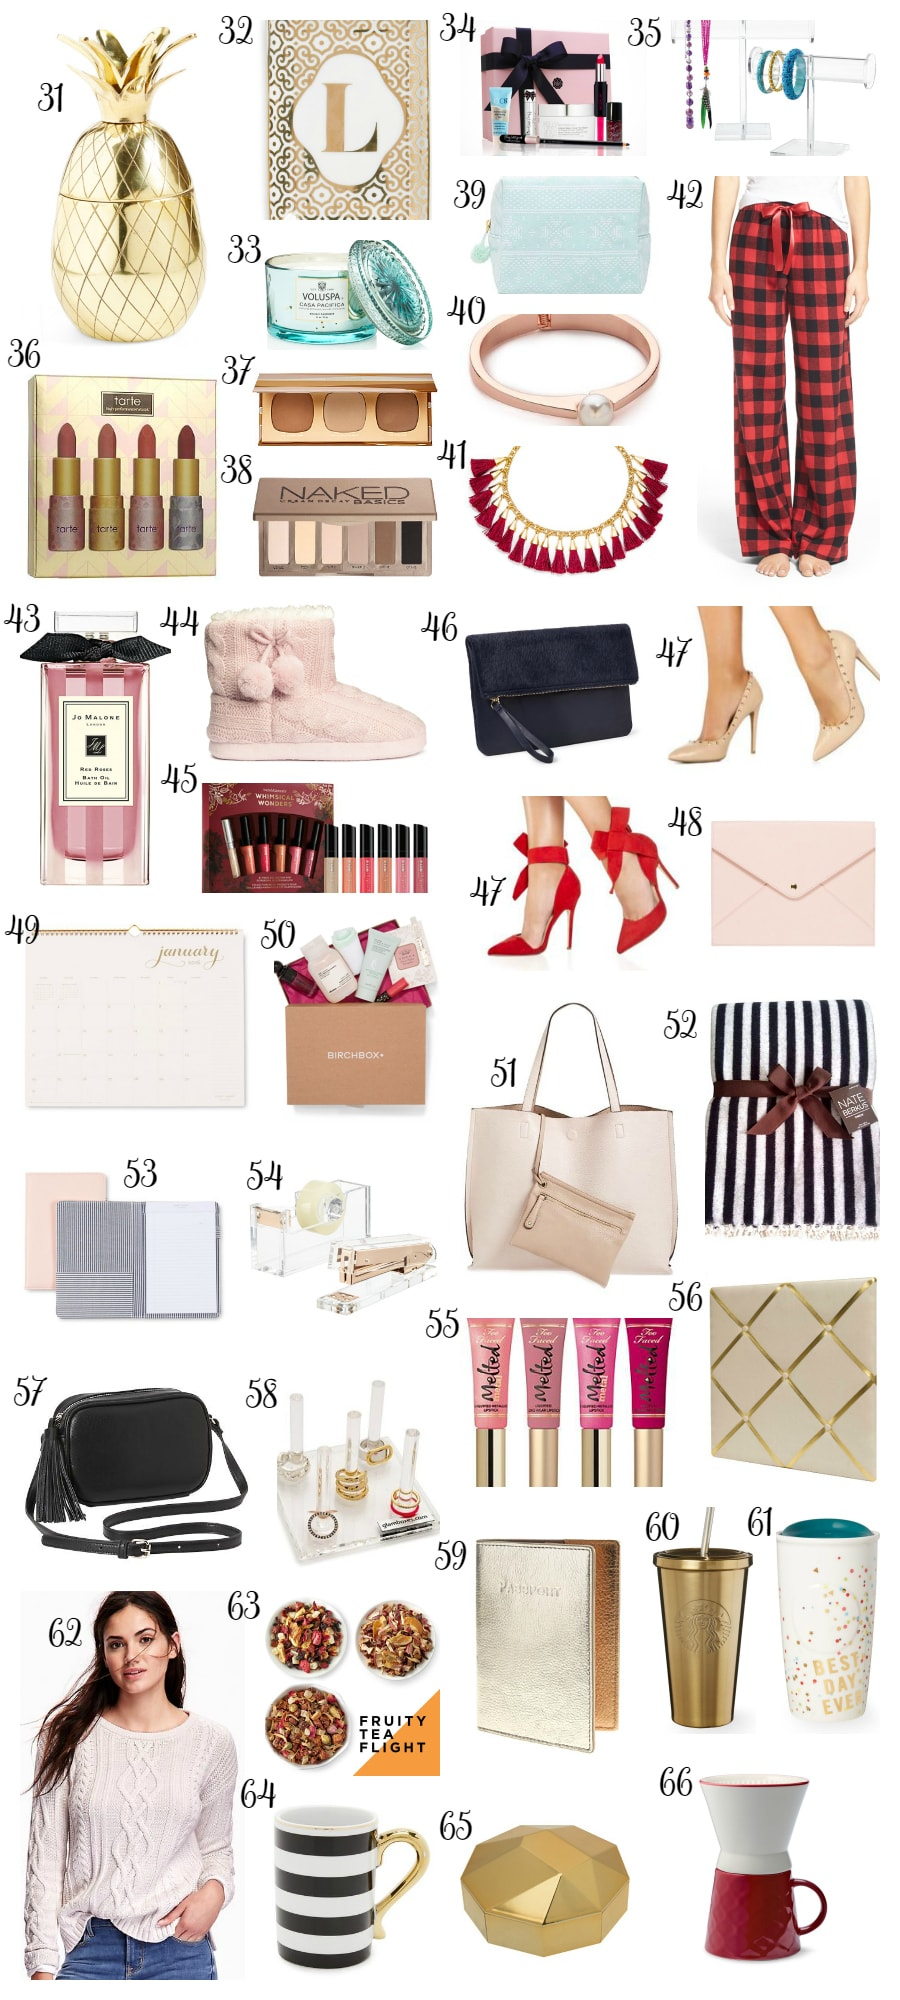 Christmas gifts under $10 for her